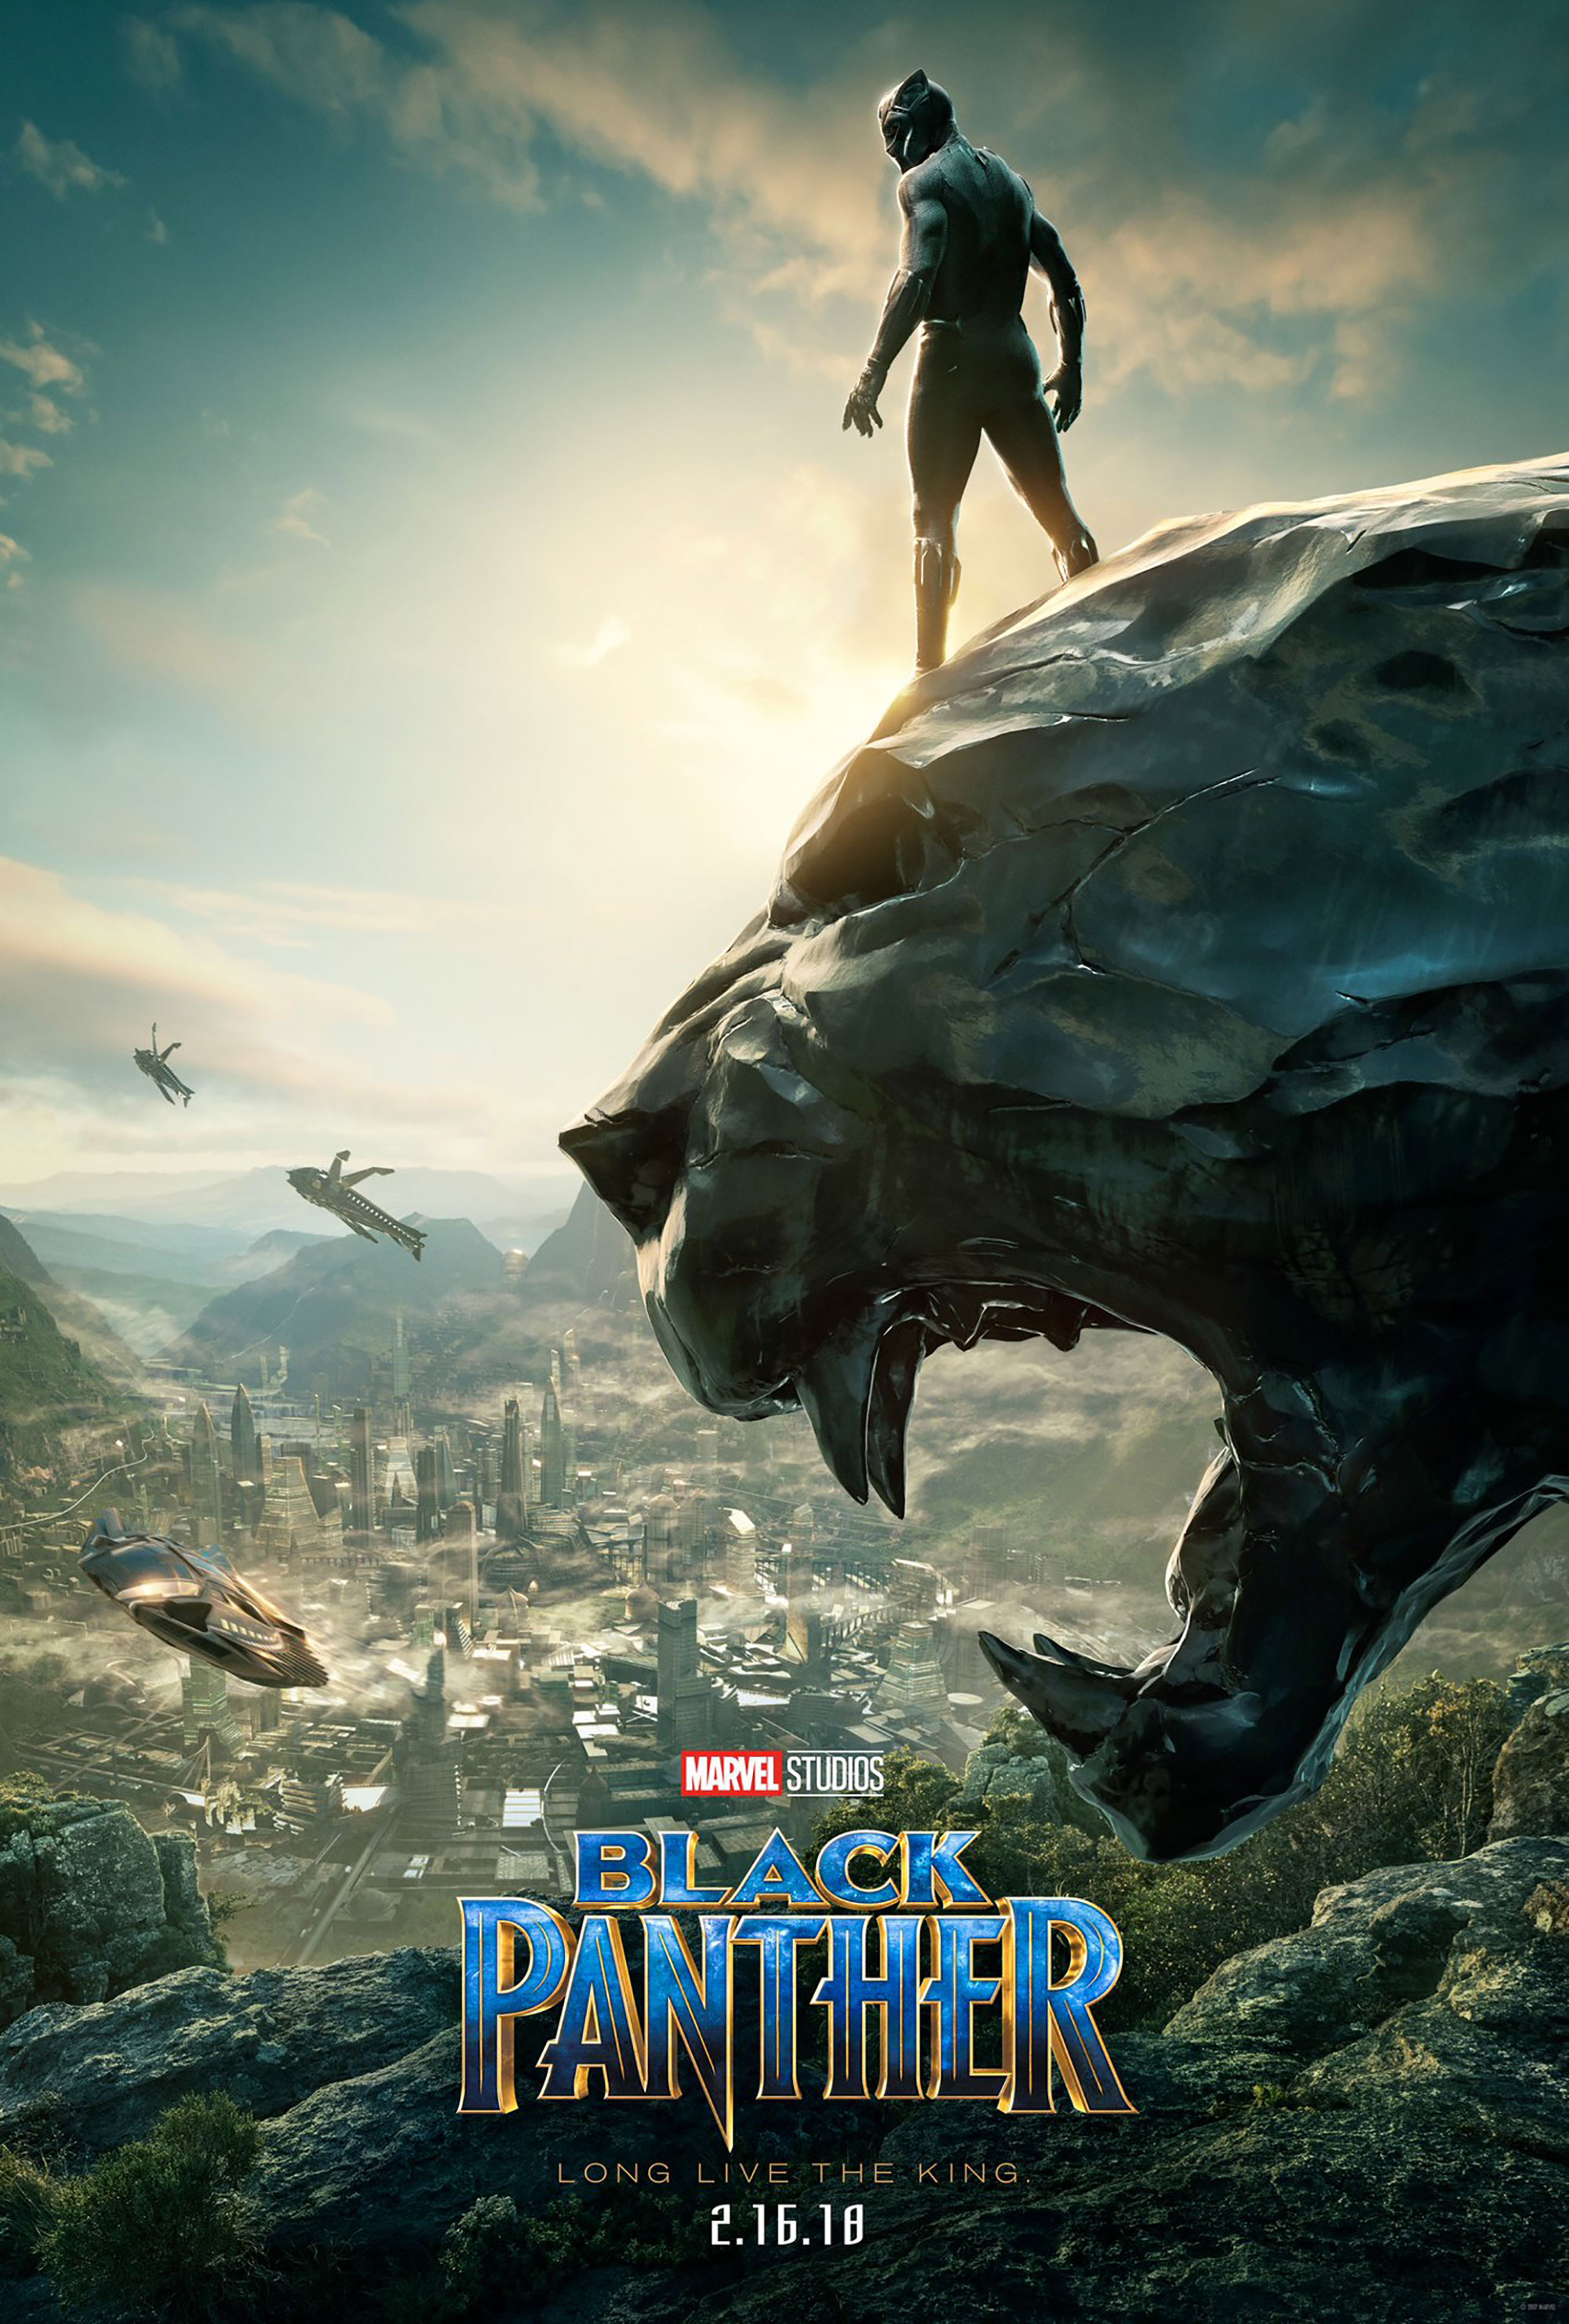 BLACK PANTHER - DIRECTED BY: RYAN COOGLERSTARRING: CHADWICK BOSEMAN, MICHAEL B. JORDAN, LUPITA NYONG'O, DANAI GURIRA, DANIEL KALUUYA, LETITIA WRIGHTRATED: PG13RUNNING TIME: 2H 14MTMM SCORE: 4 STARS OUT OF 5STRENGTHS: INTERESTING CHARACTER VARIETY, MUSIC, SOME ACTION SCENES, UNIQUE PERSPECTIVEWEAKNESSES: MAIN VILLAIN, POOR WORLD BUILDING, STILL A TENTPOLE FILM